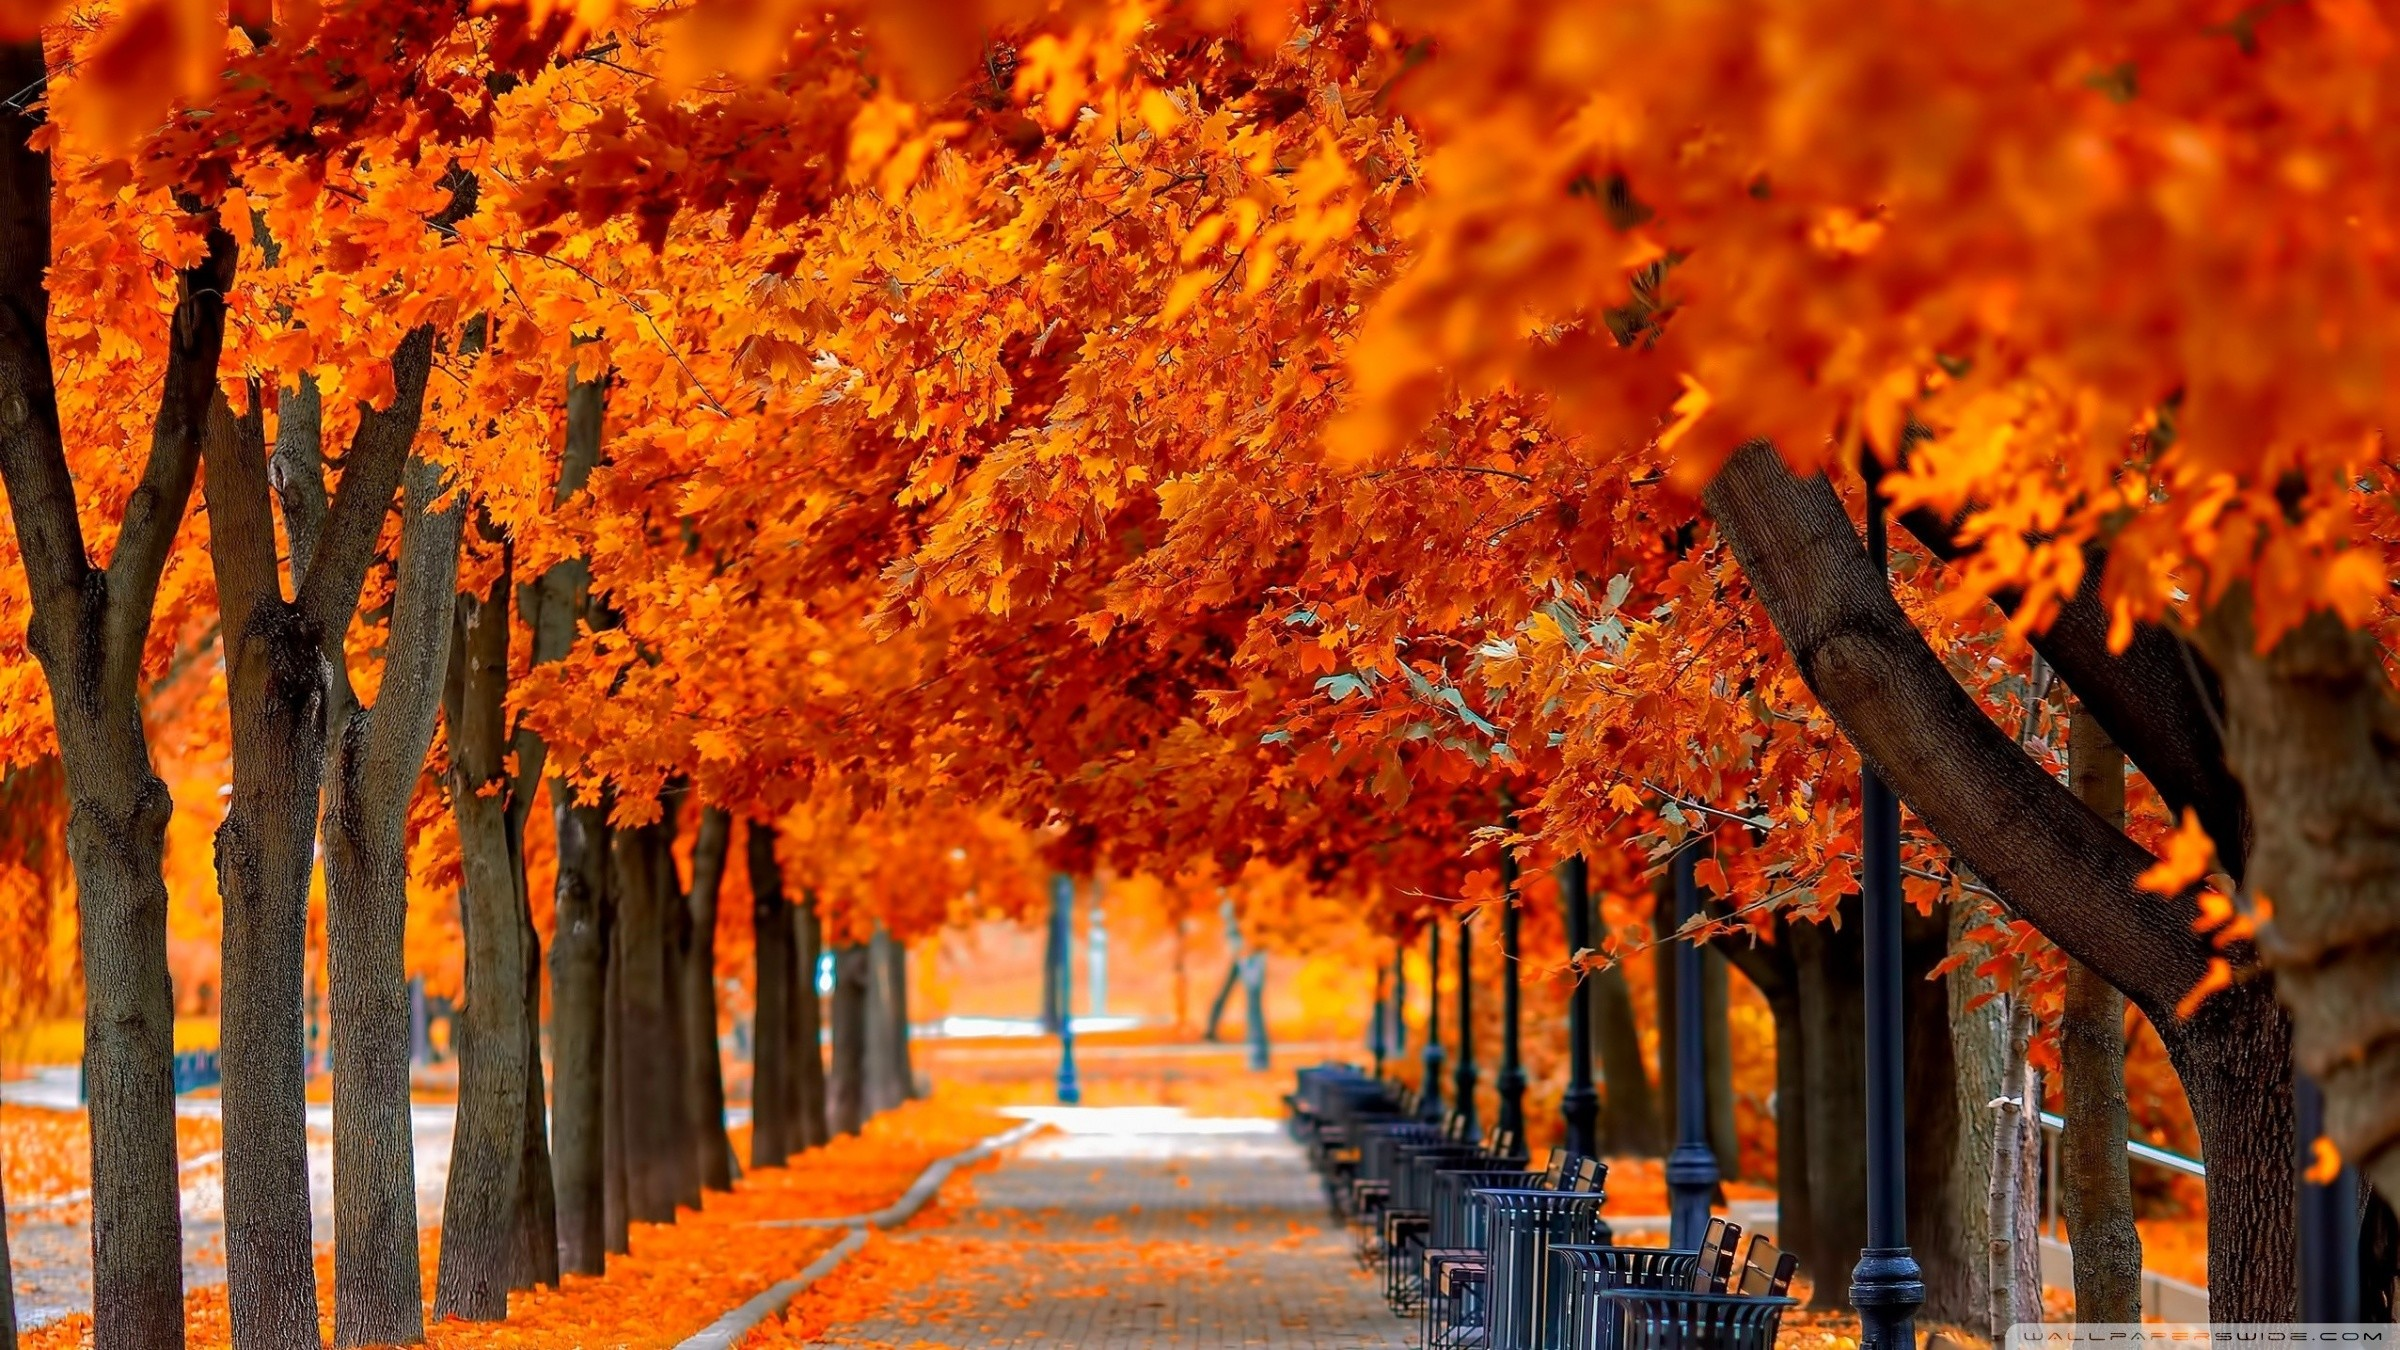 2400x1350 Wallpaper Fall nice hd wallpapers with red and orange colors